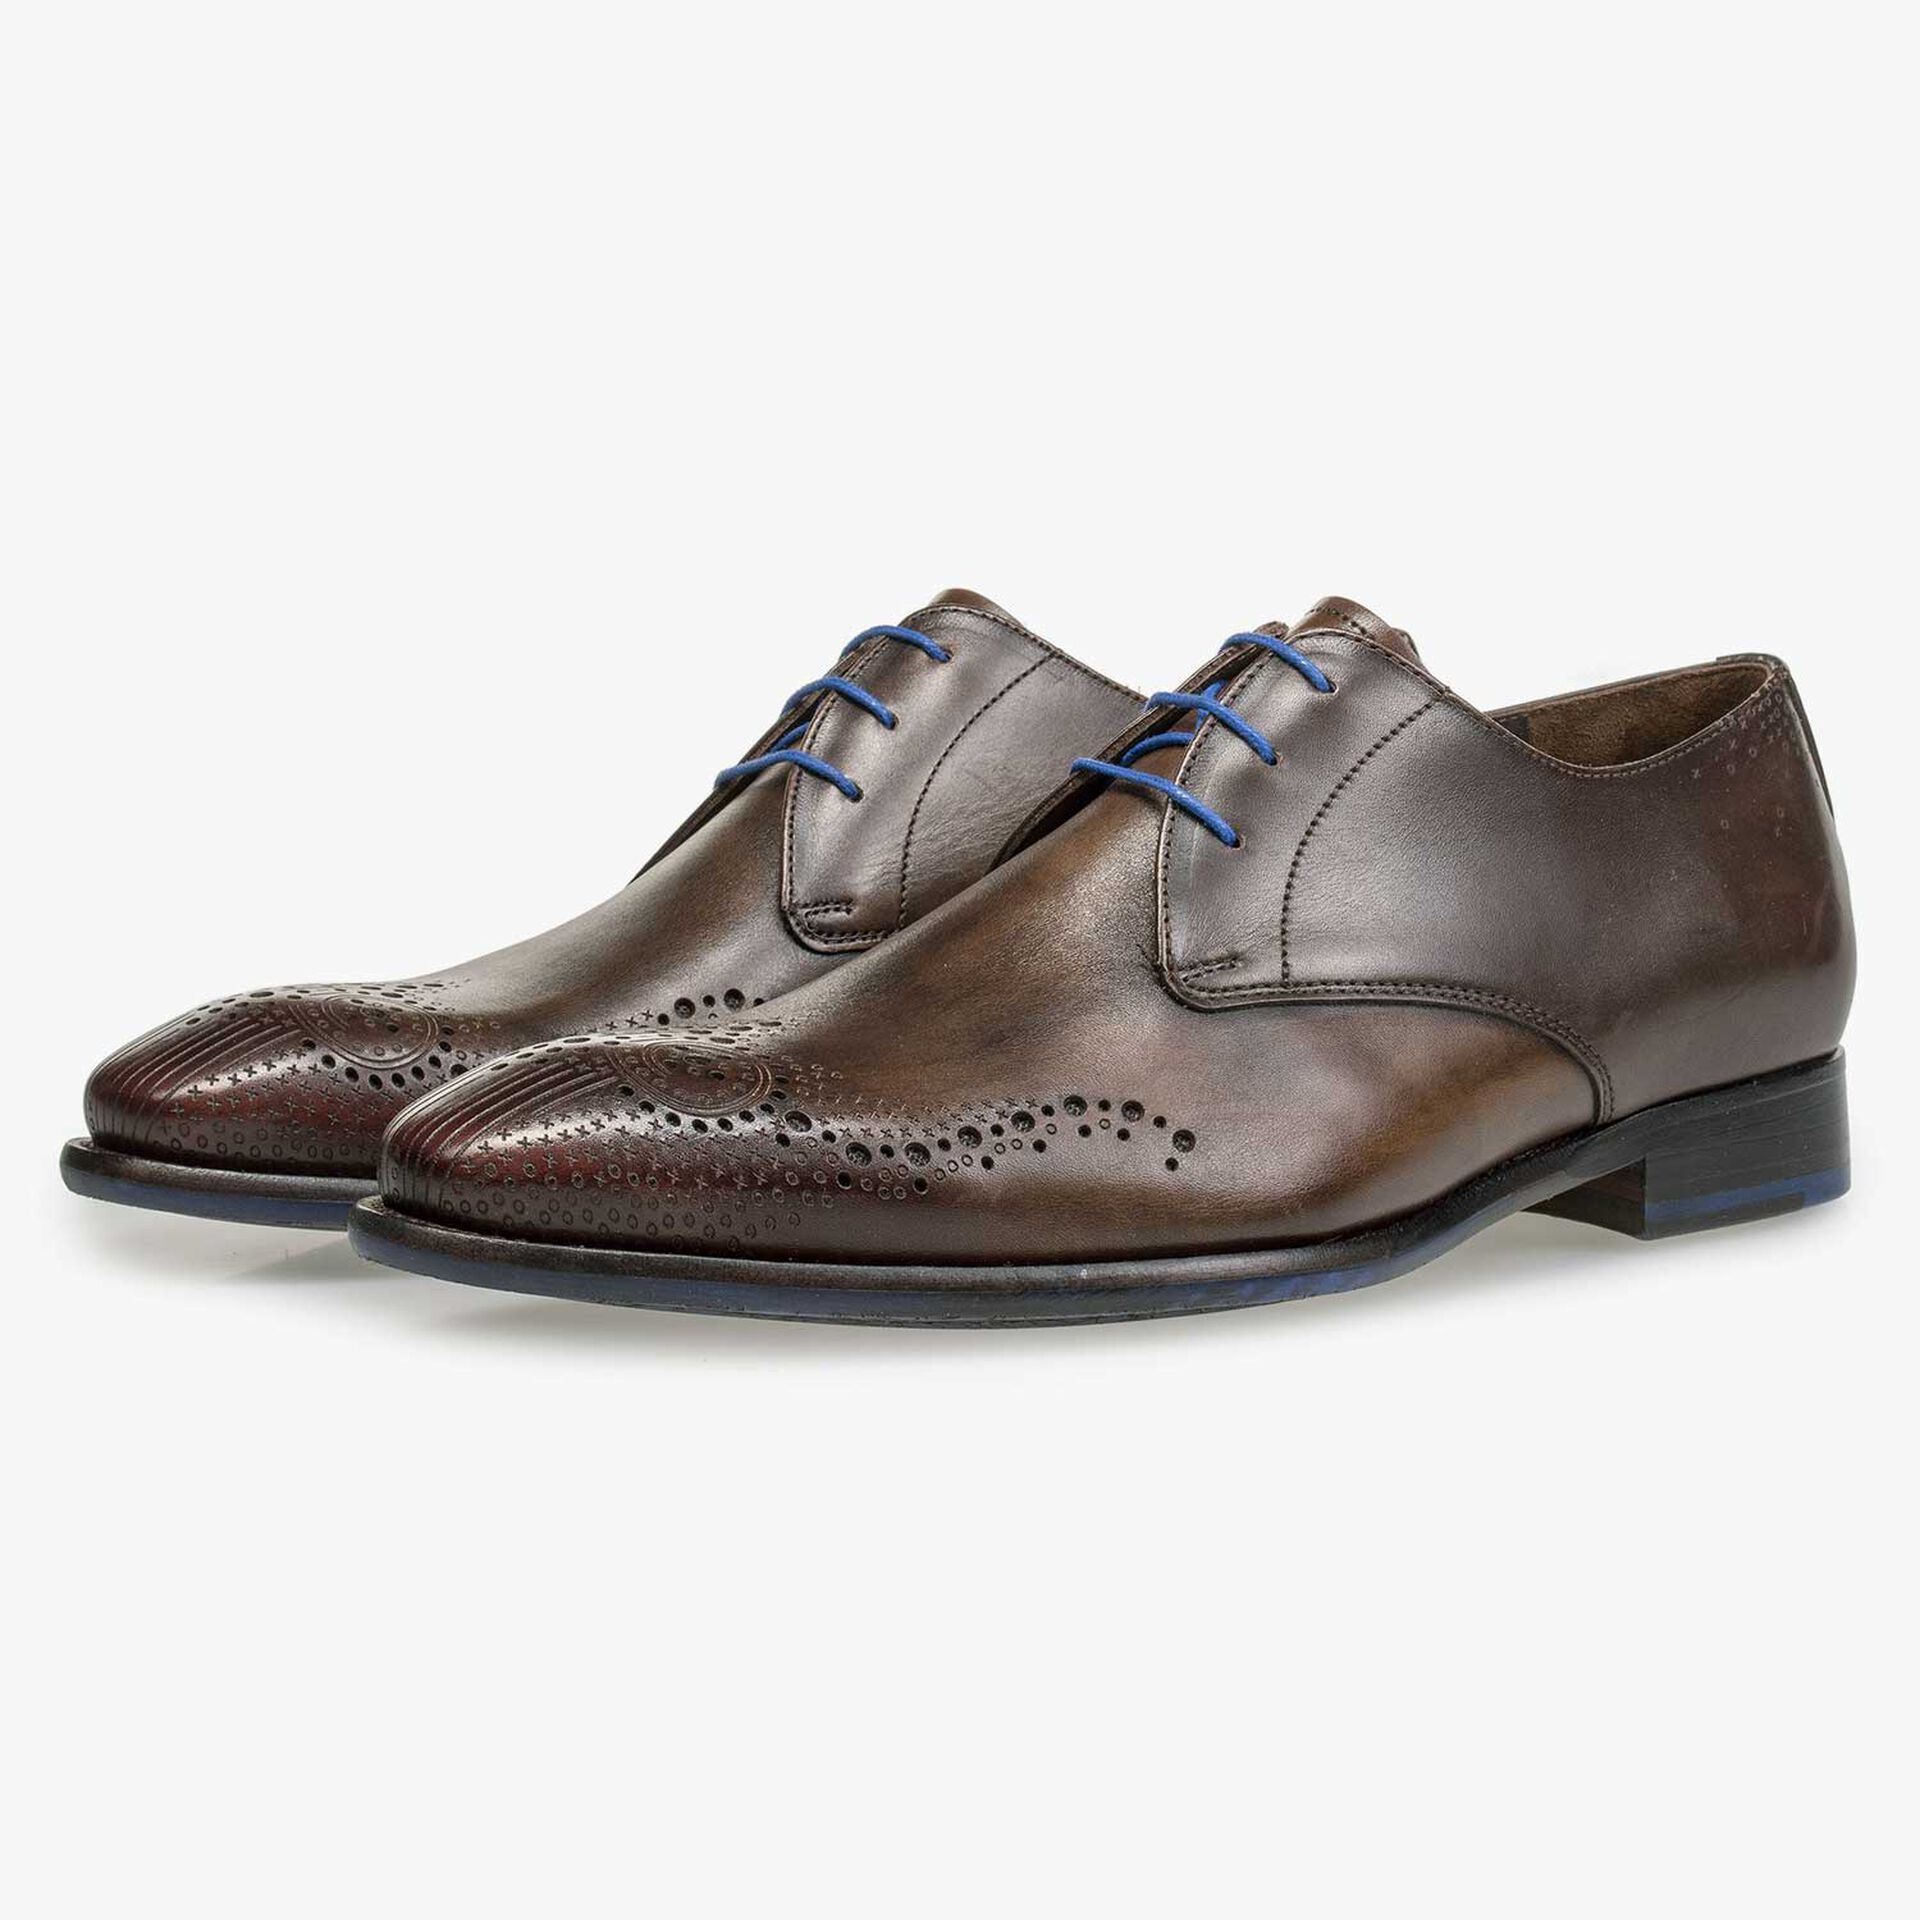 Brown brogue calf's leather lace shoe